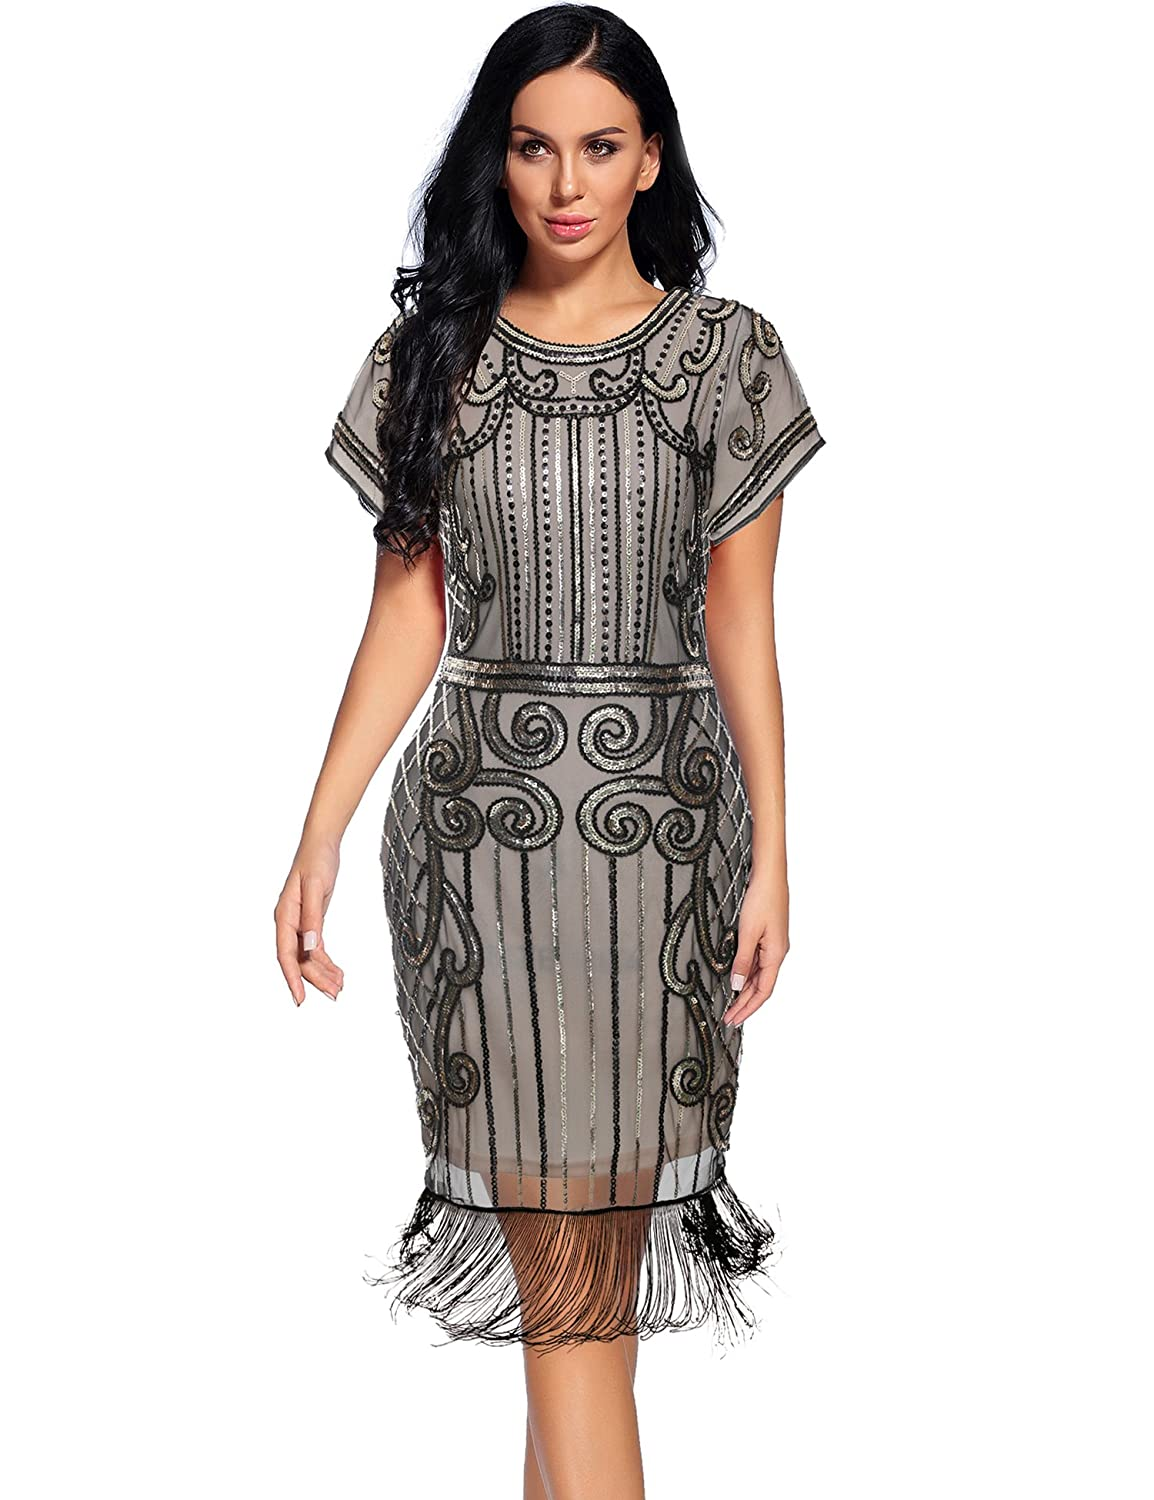 Women's Flapper Dresses 1920s Gatsby Sequin Fringe Short Sleeve Dress